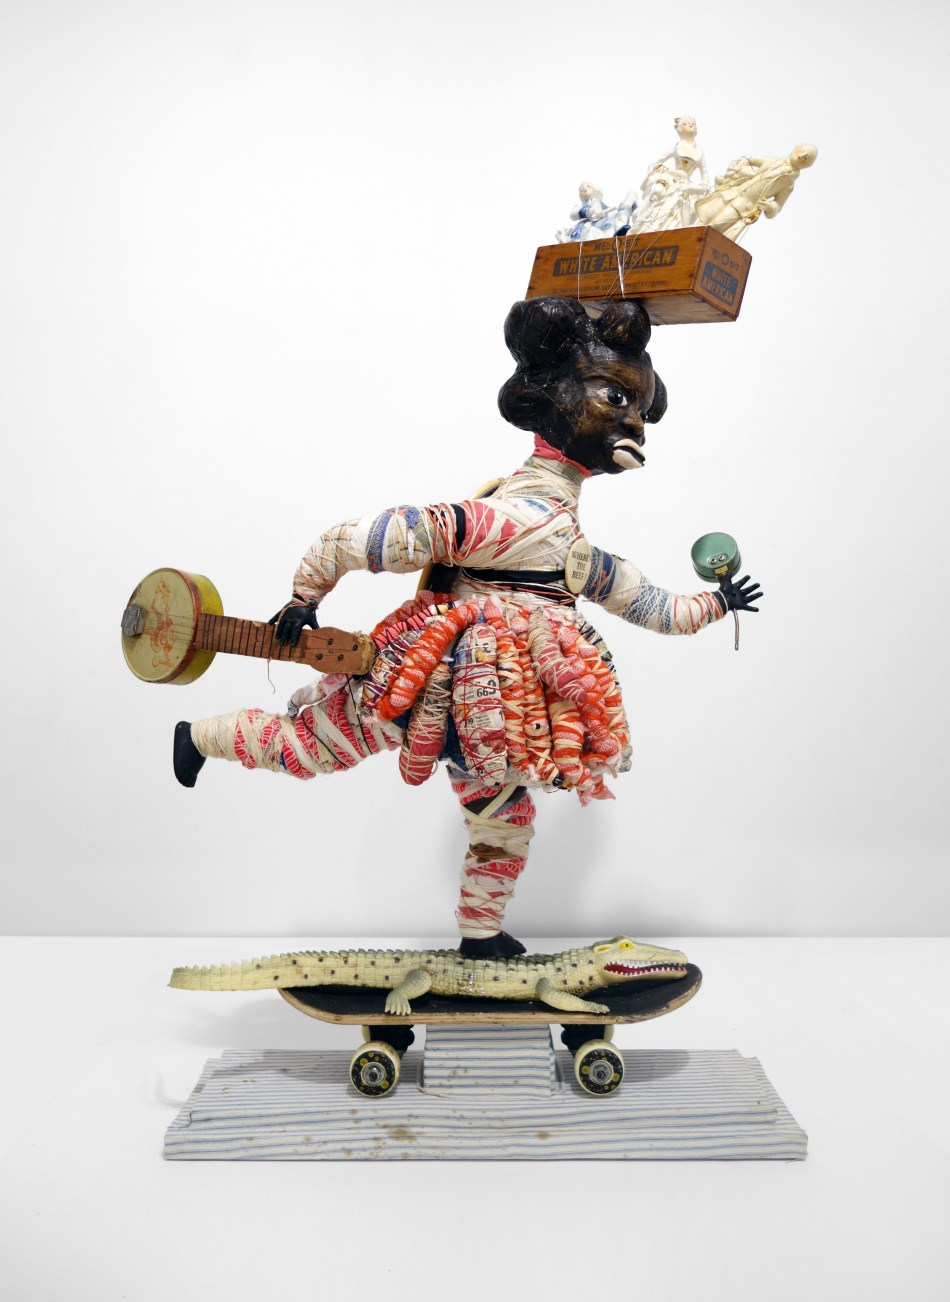 Vanessa German, white american cheese, 2014, skateboard, toy banjo, that-- are we there yet-- feeling, 3 porcelain figures for the White american cheese box, old doll parts, antique blue ticking that is older than i am, tar, red,white, blue, black pigment, cloth, pain, pain, pain, ok ok ok, rhinestone for eyes,i'm not over it, cloth, wood, twine, where's the beef pin, toy alligator, cowrie shells, pressure gauge, mirror on her back-- to watch her back-- who will watch your back--oh lord here we go-- who took my cheese?, 41 x 24 x 10 inches Courtesy of the artist and Pavel Zoubok Gallery, New York